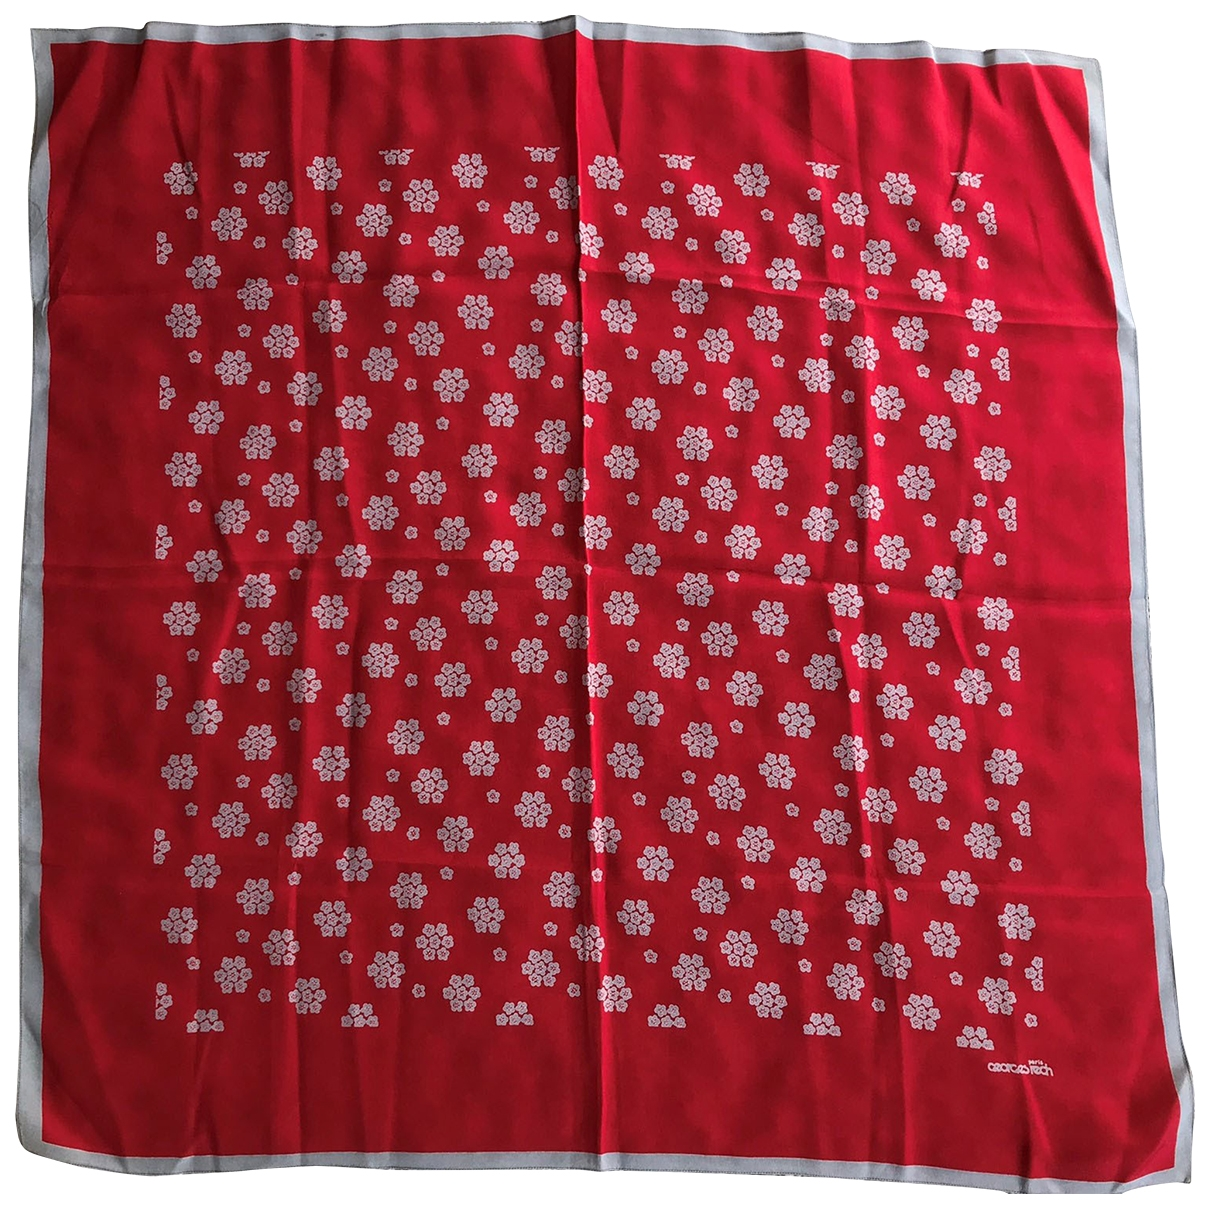 Georges Rech \N Red Silk scarf for Women \N